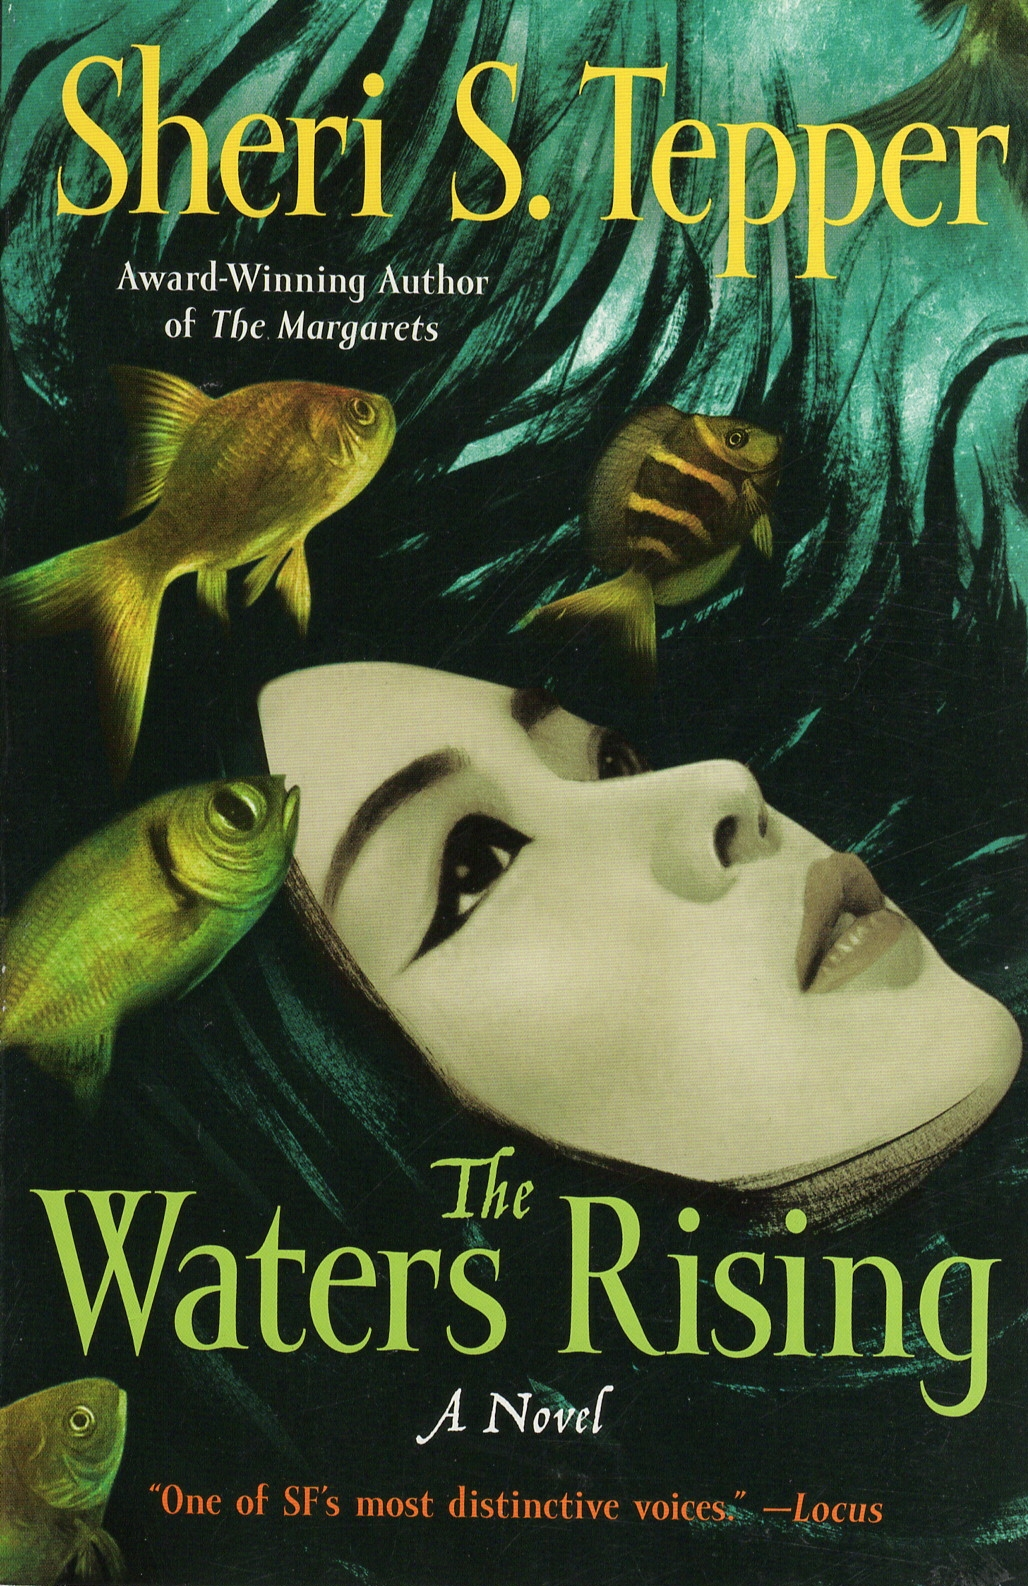 The Waters Rising